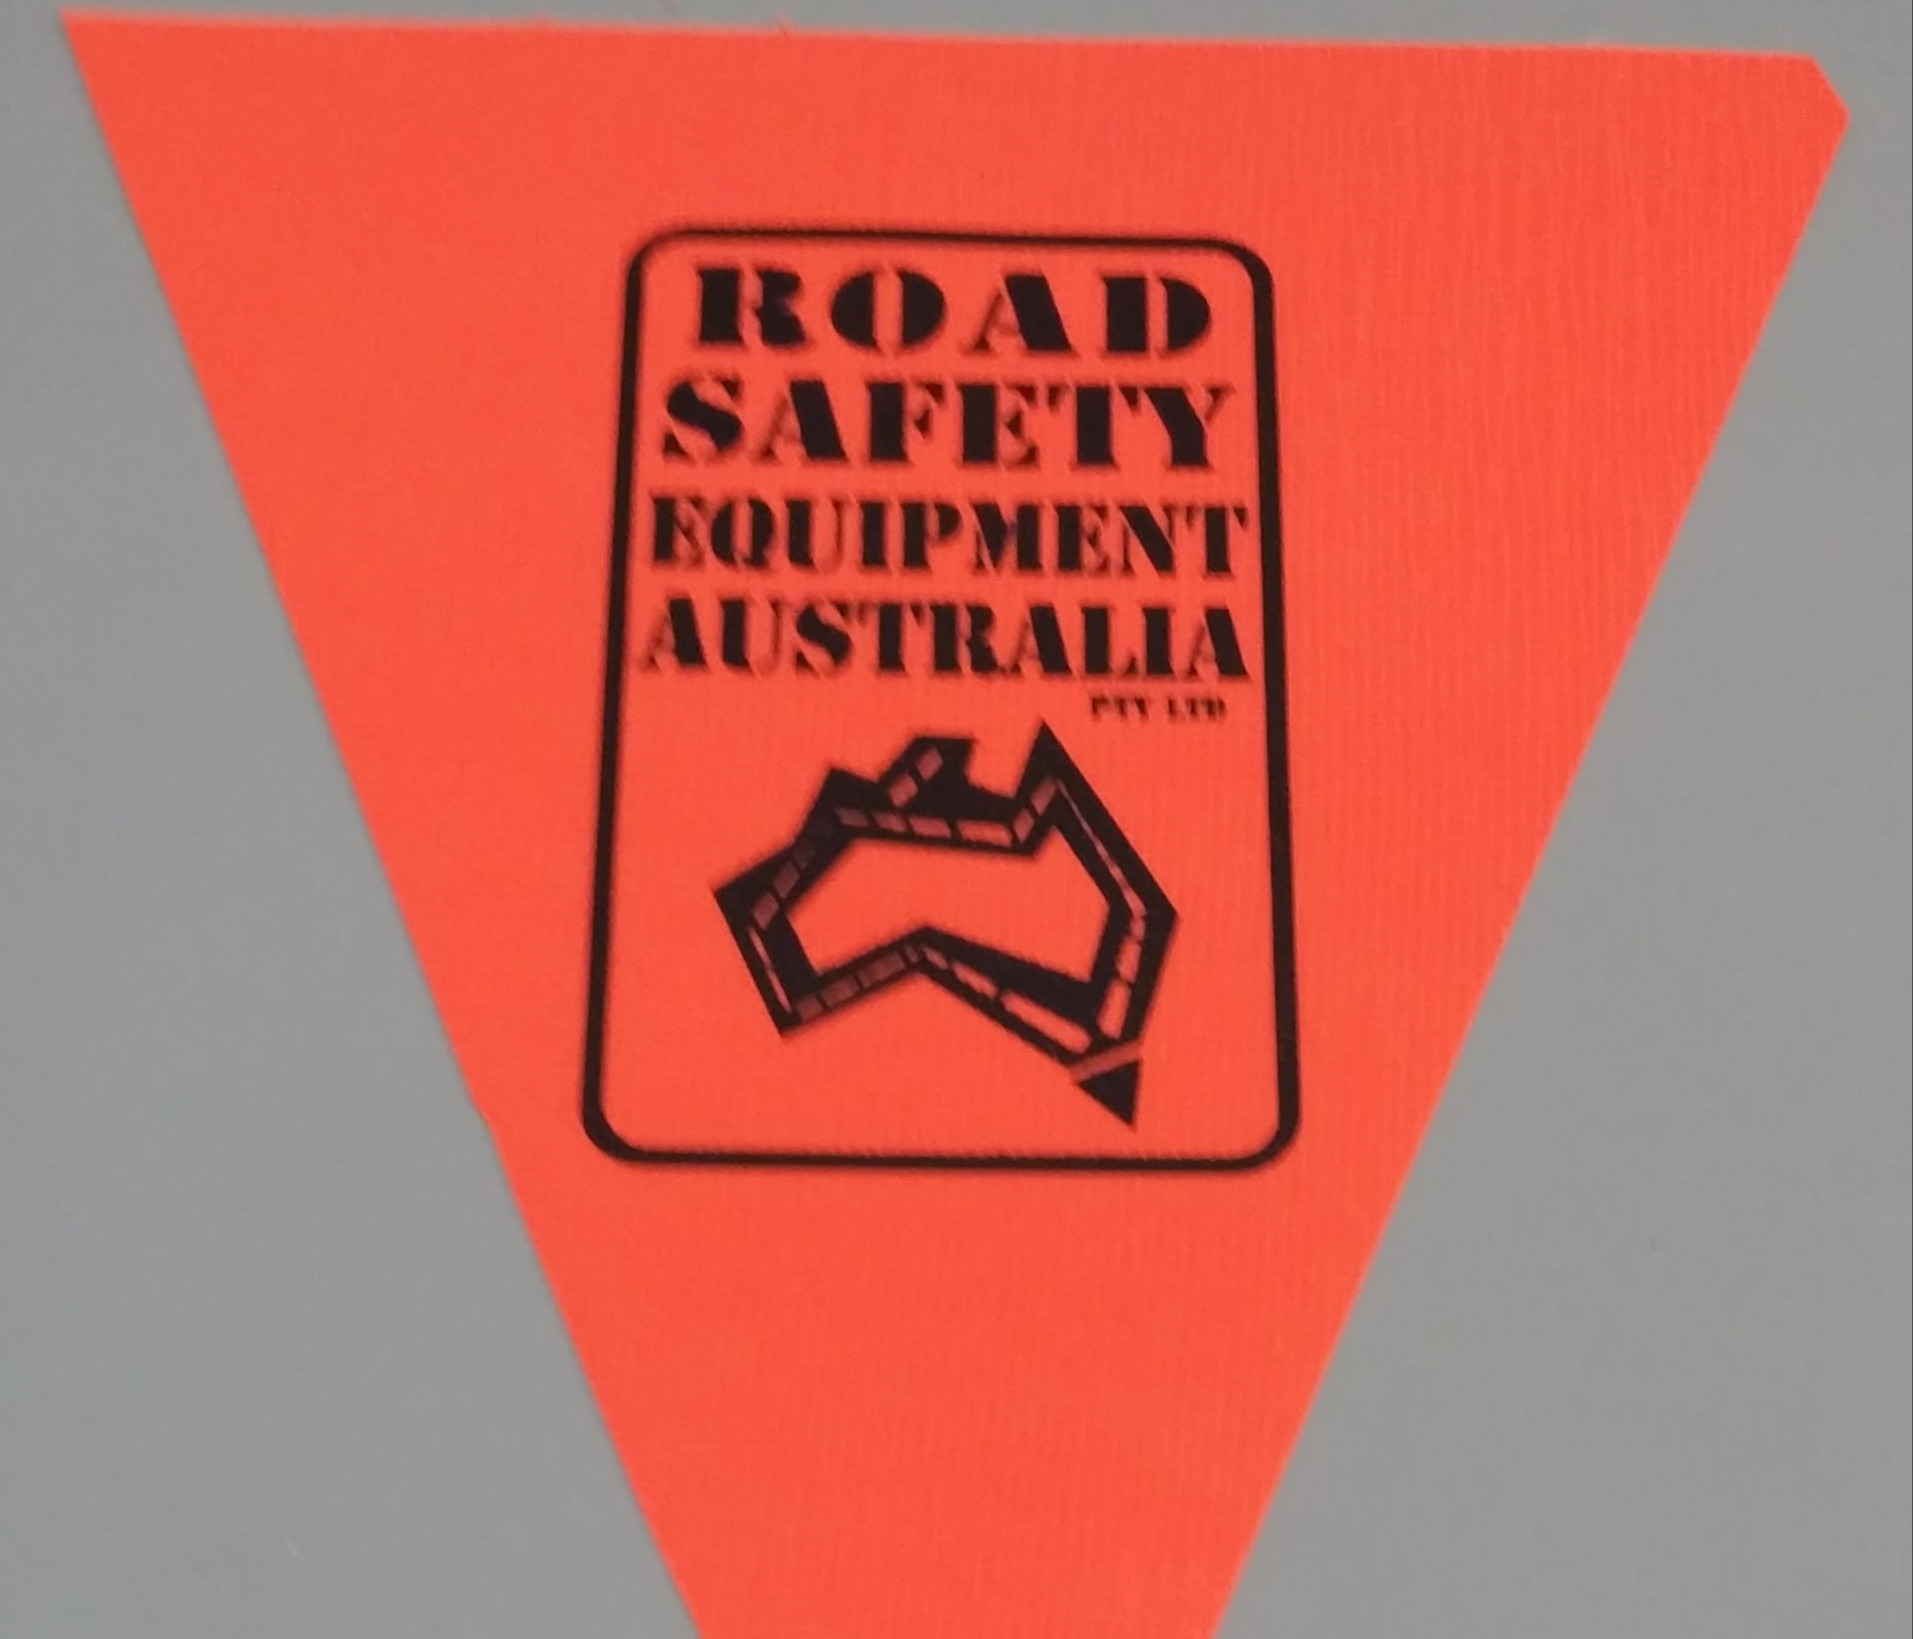 Road Safety Equipment Australia (orange)